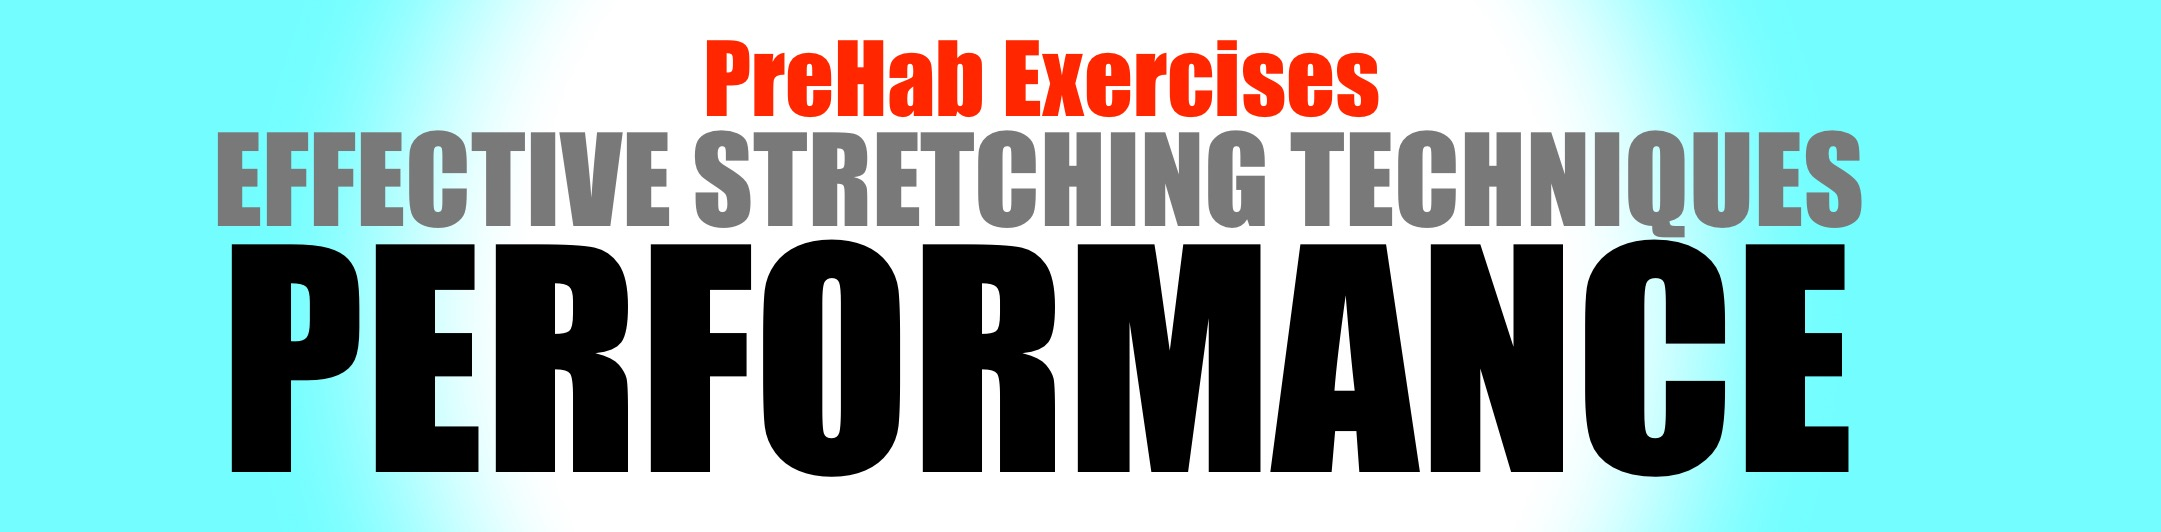 PreHab Exercises - Effective Stretching for Performance